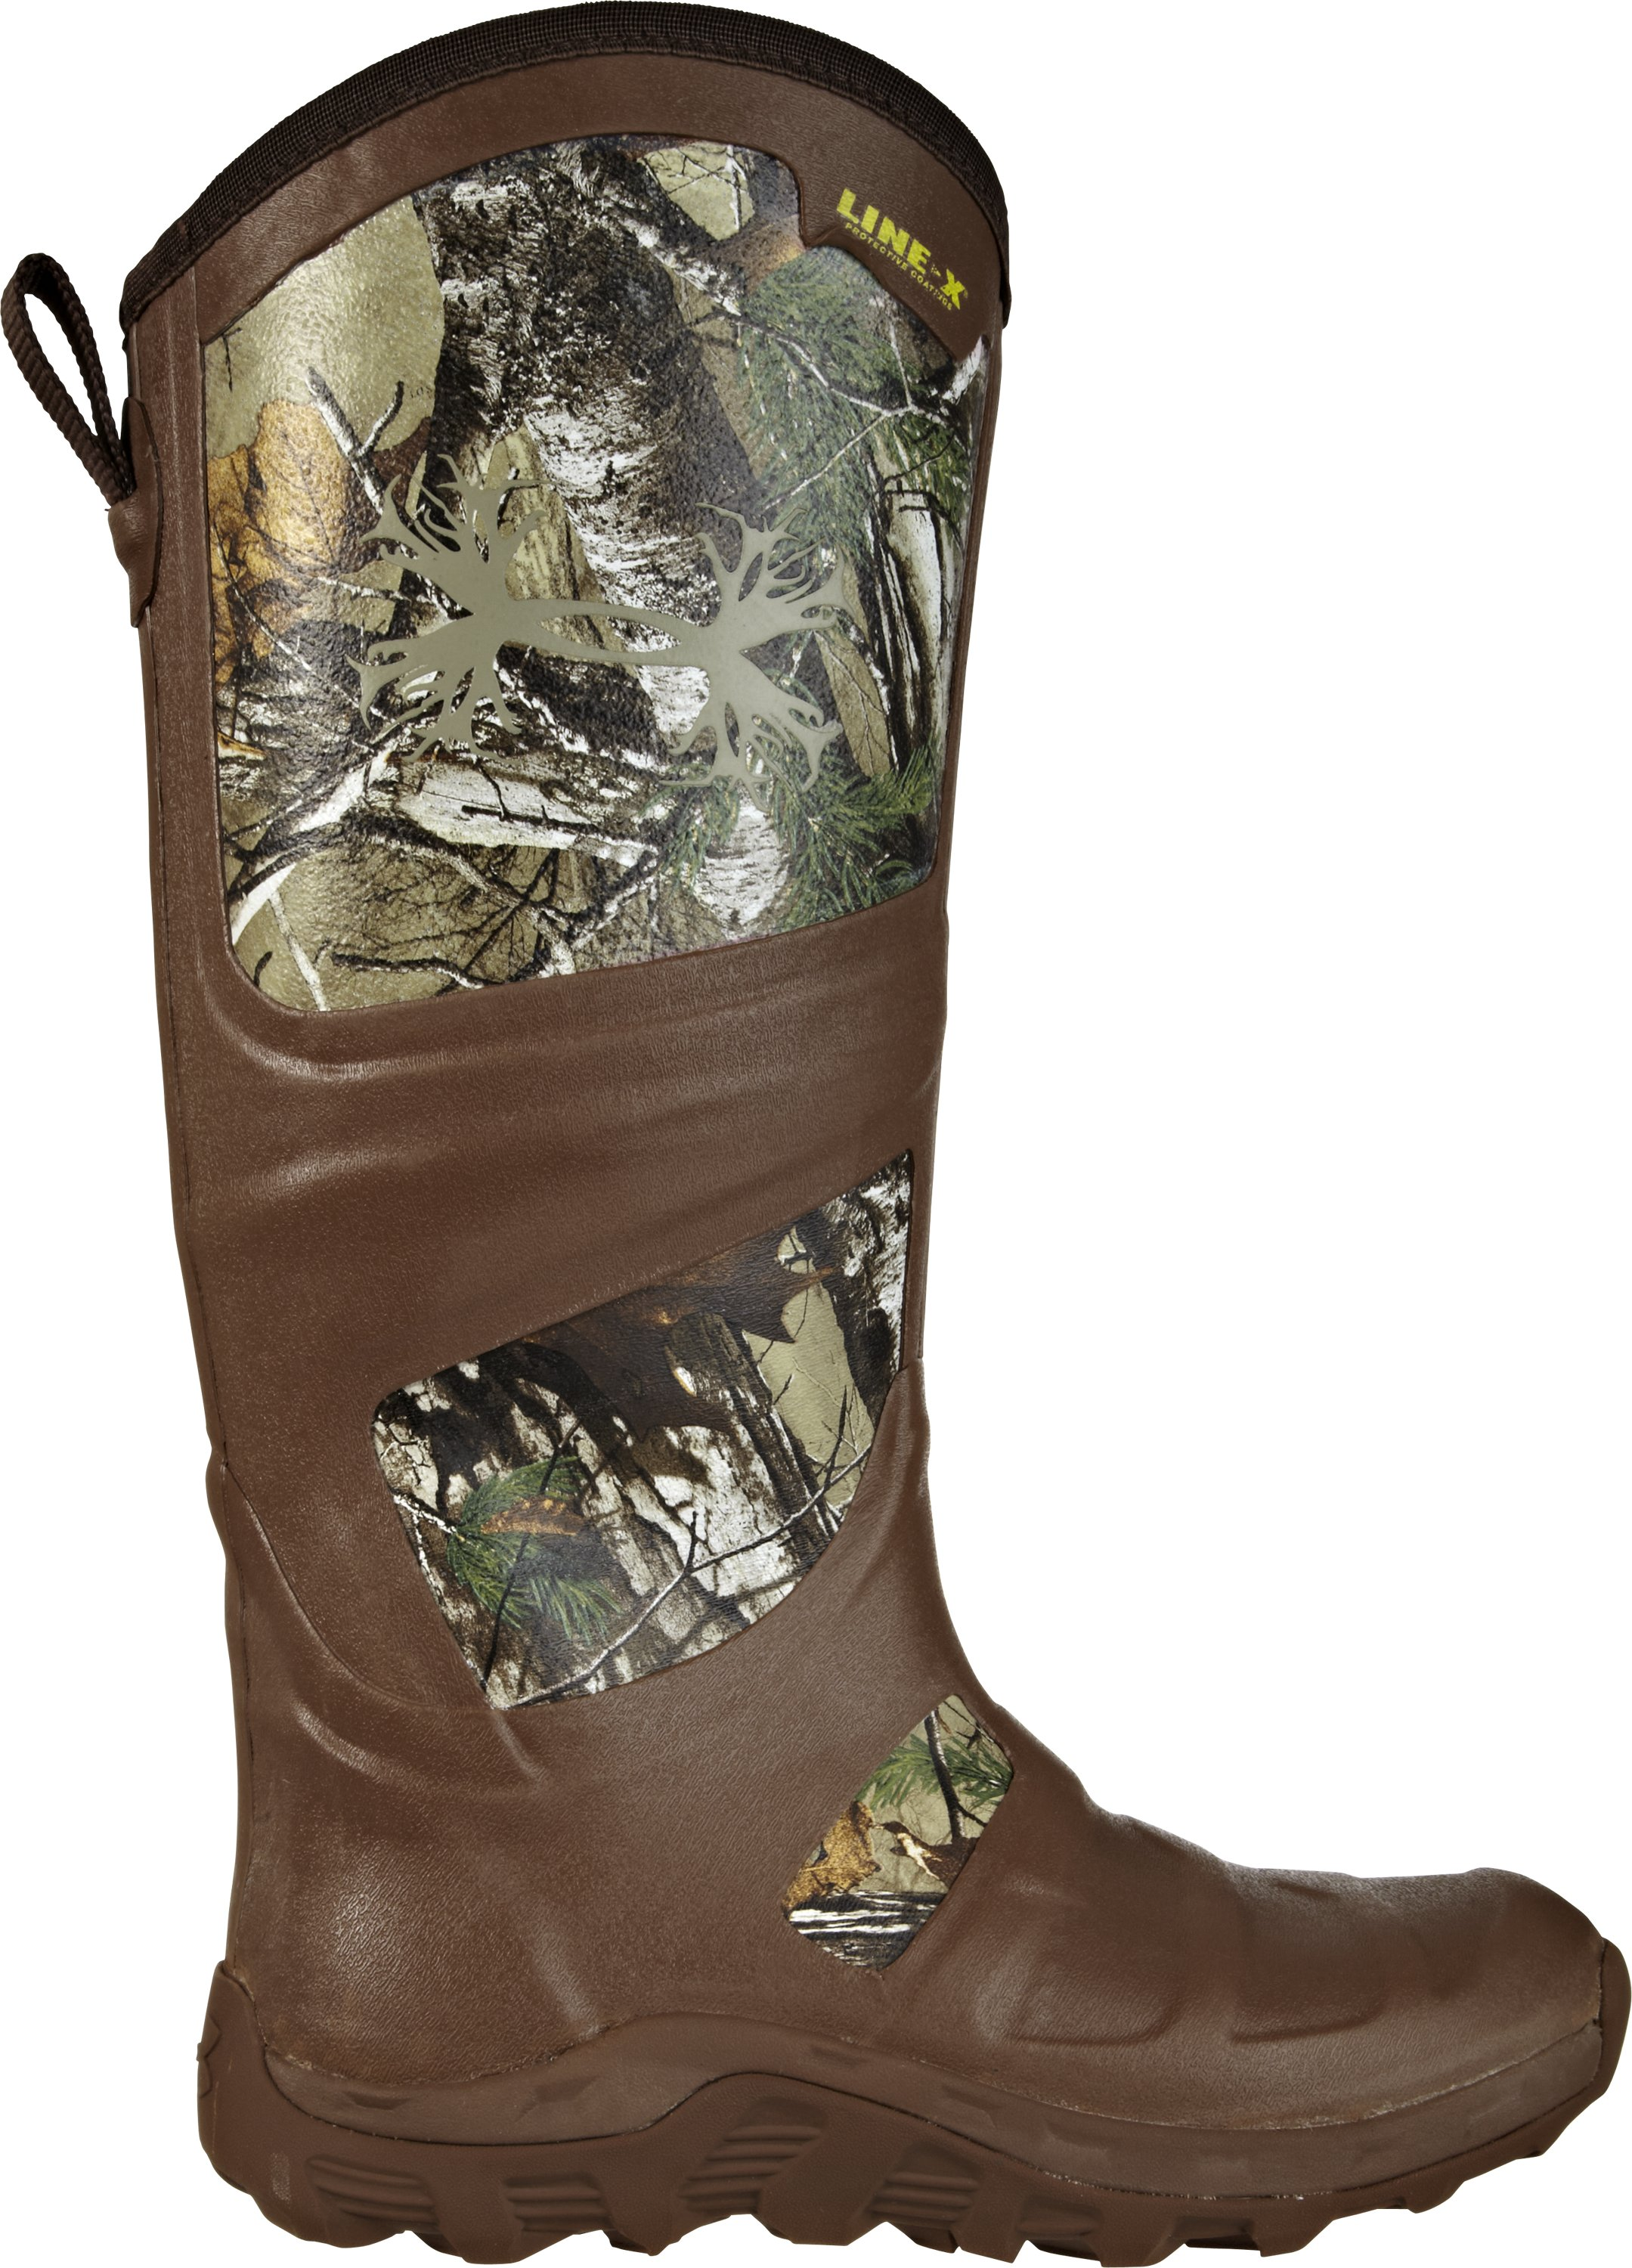 Men's UA Spinex Hunting Boots, REALTREE AP-XTRA, zoomed image